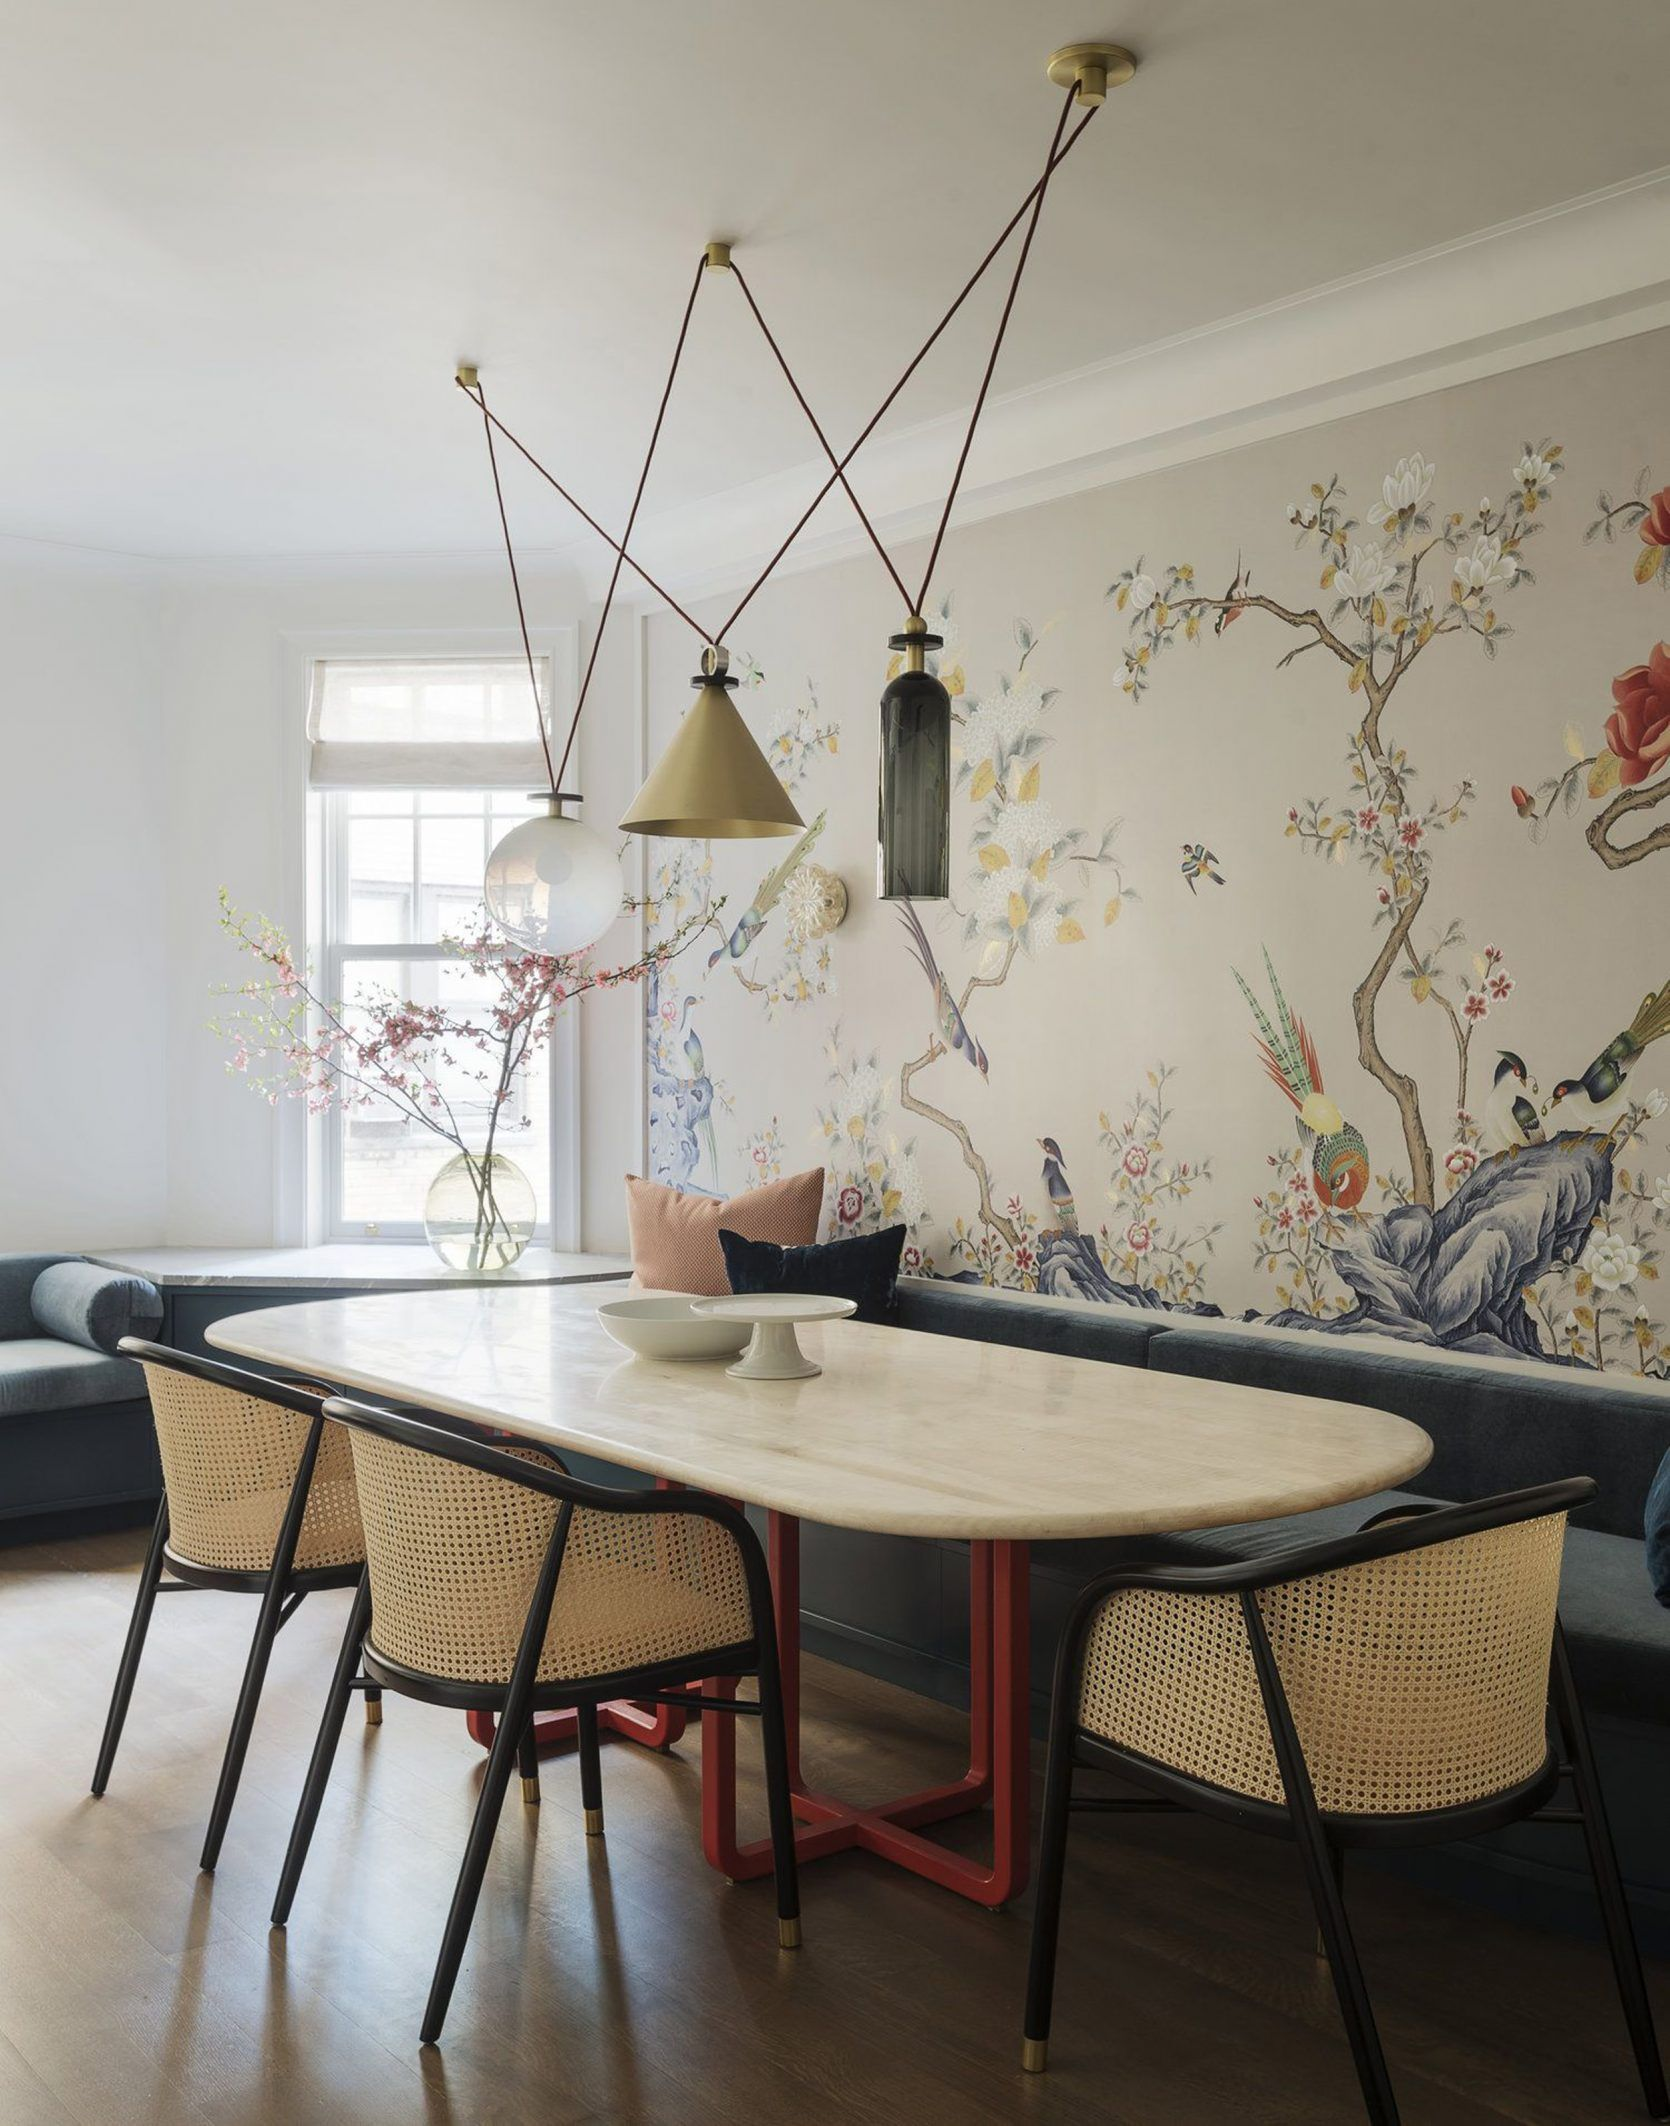 2018 Design Trends: Chinoiserie is Making a Comeback